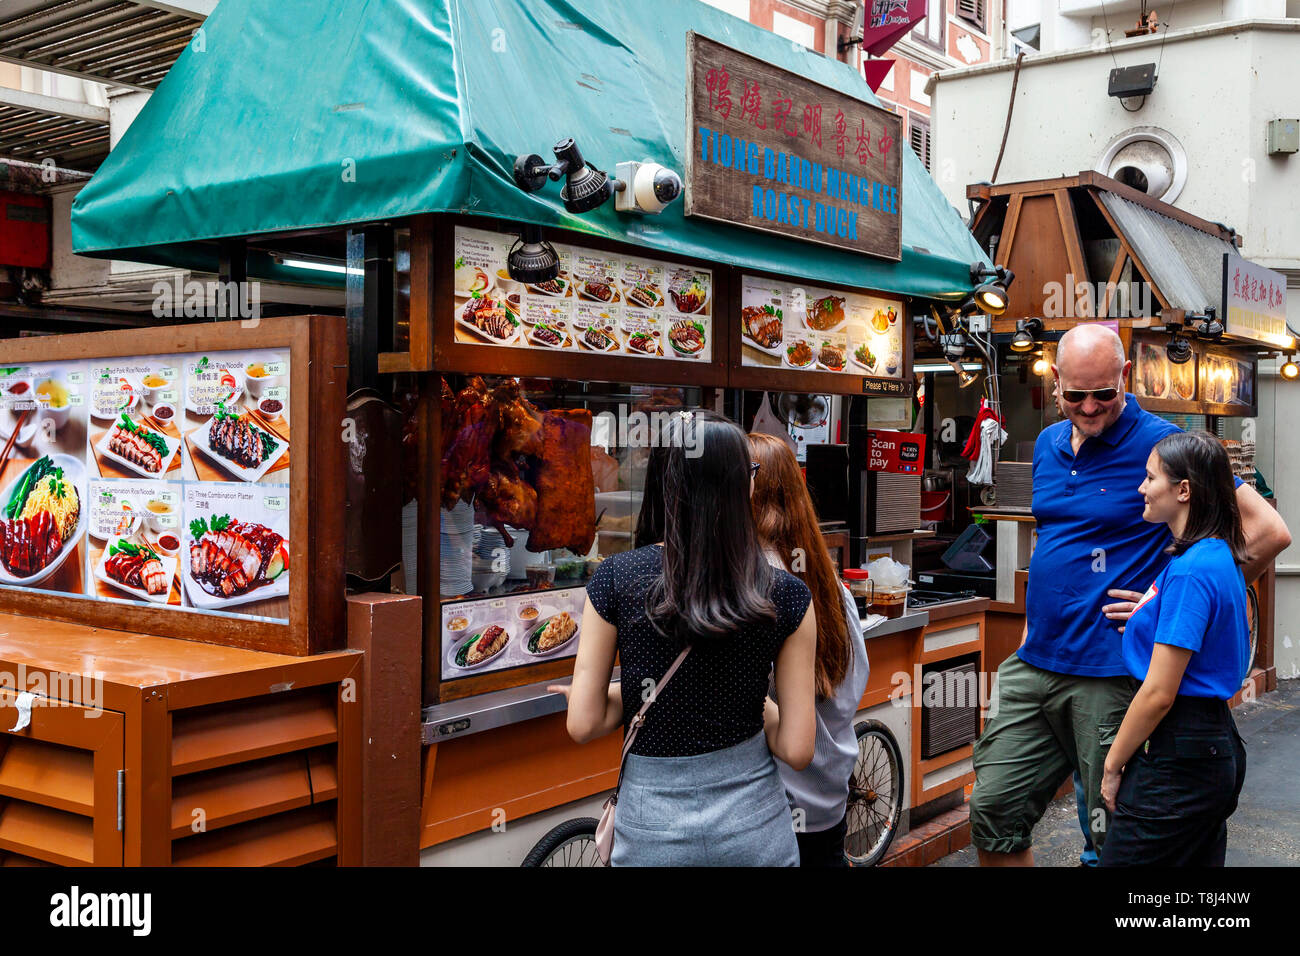 Tourists and Locals Queueing At A Food Stall, Chinatown, Singapore, South East Asia Stock Photo